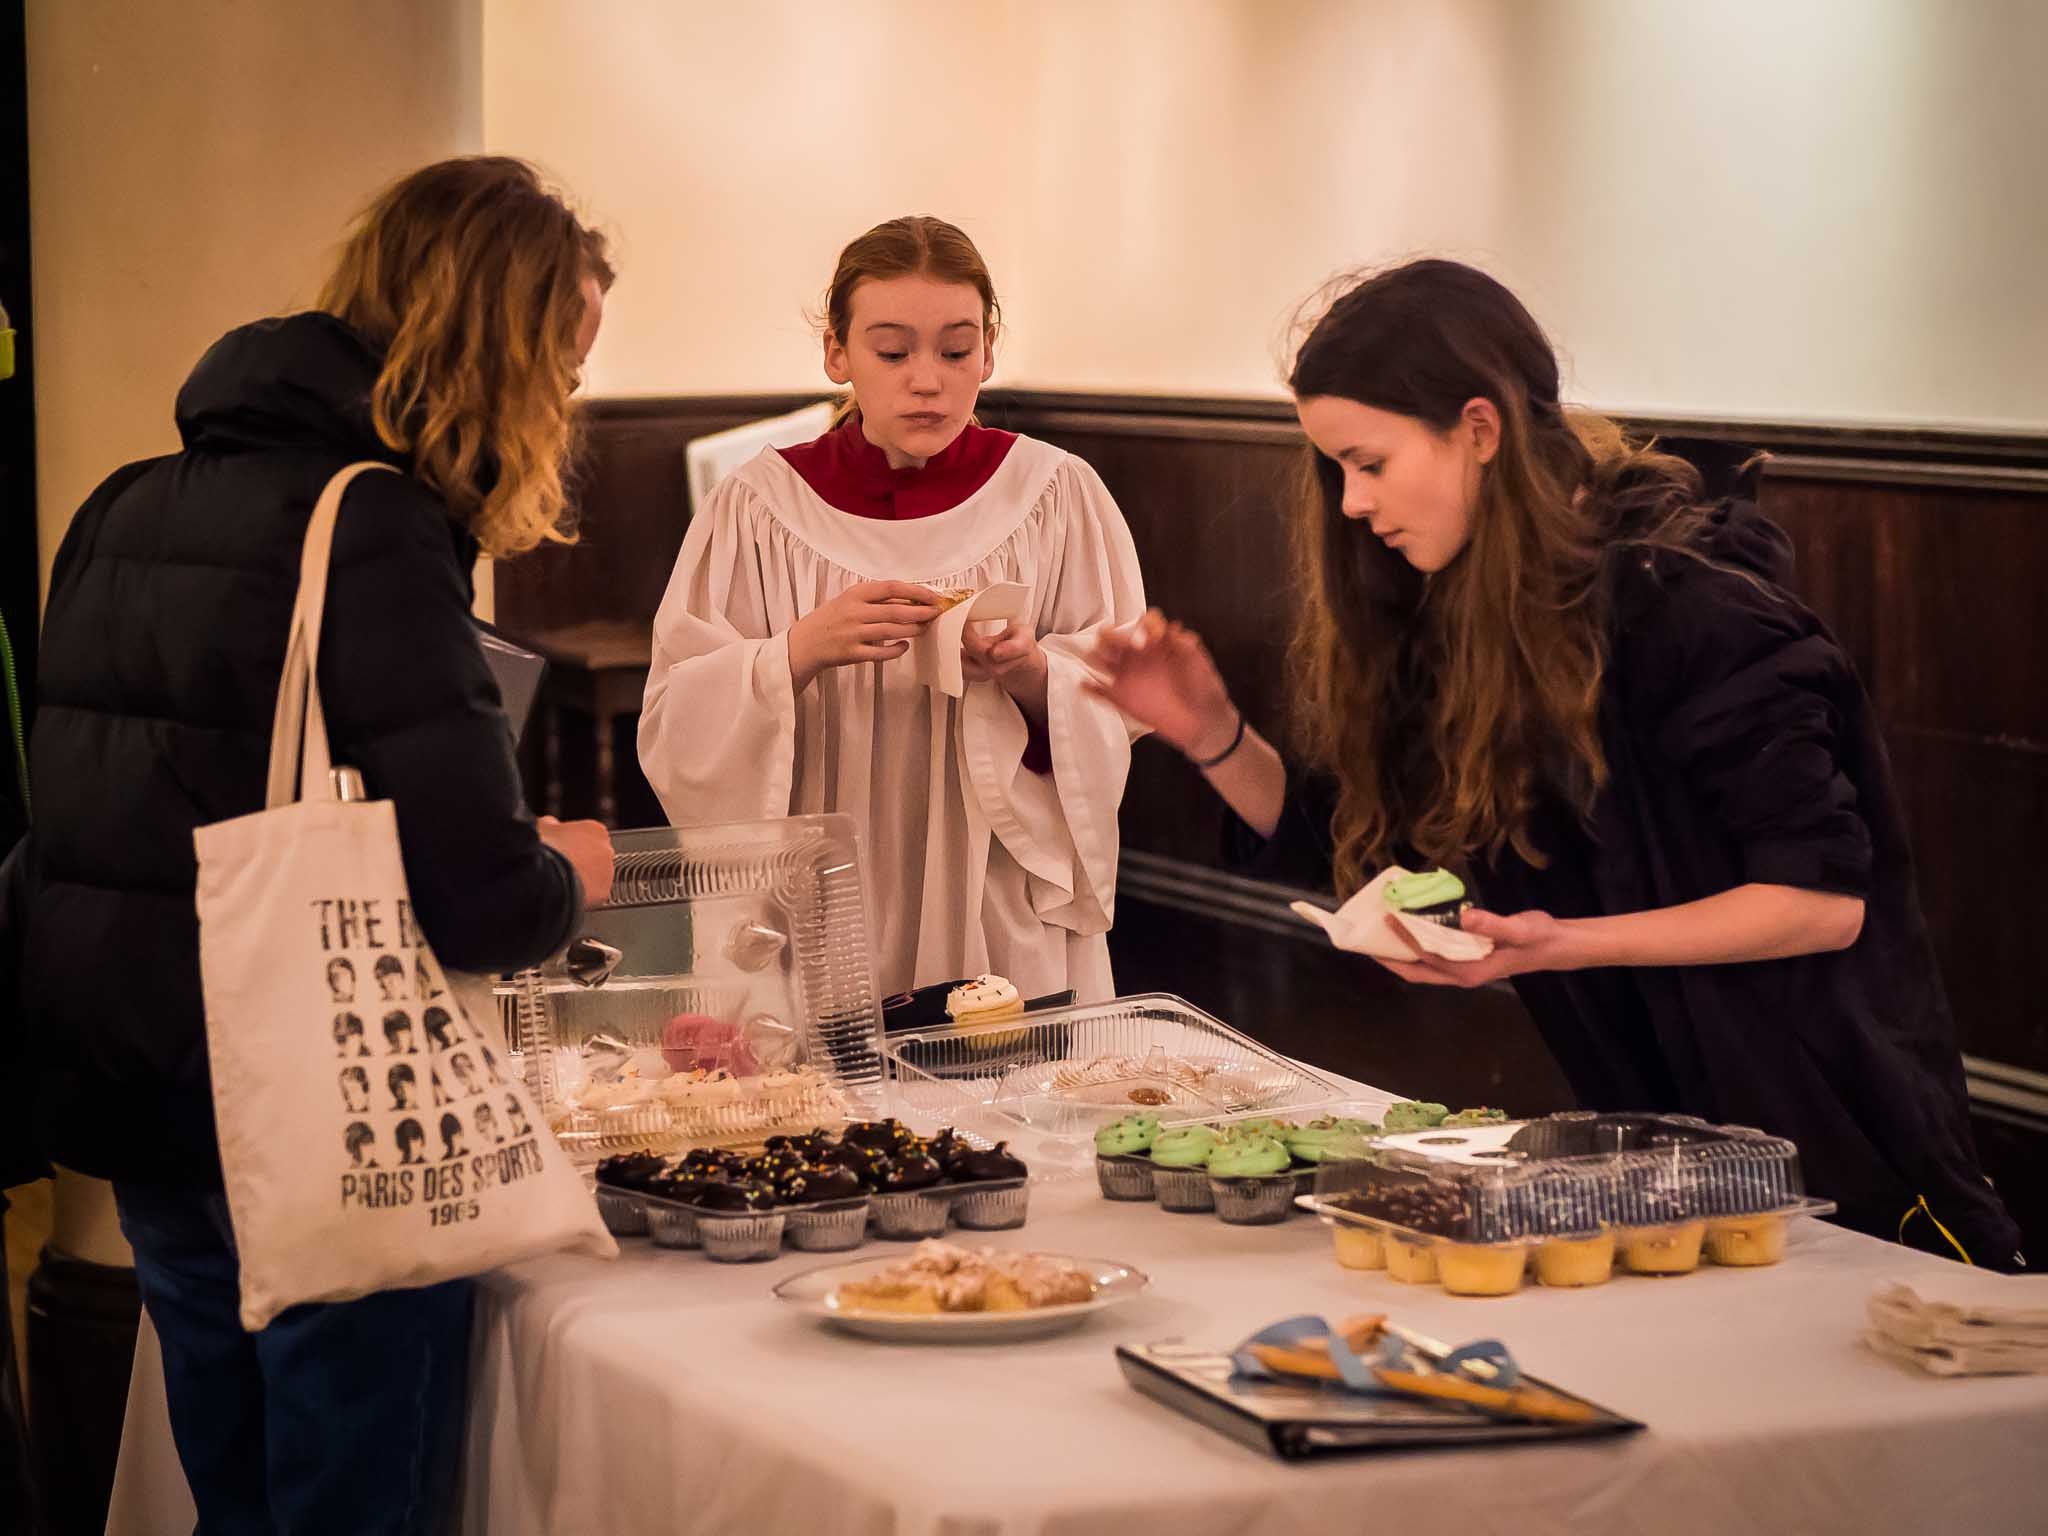 Cupcakes were a popular snack after Evensong.   Photo by Ricardo Gomez